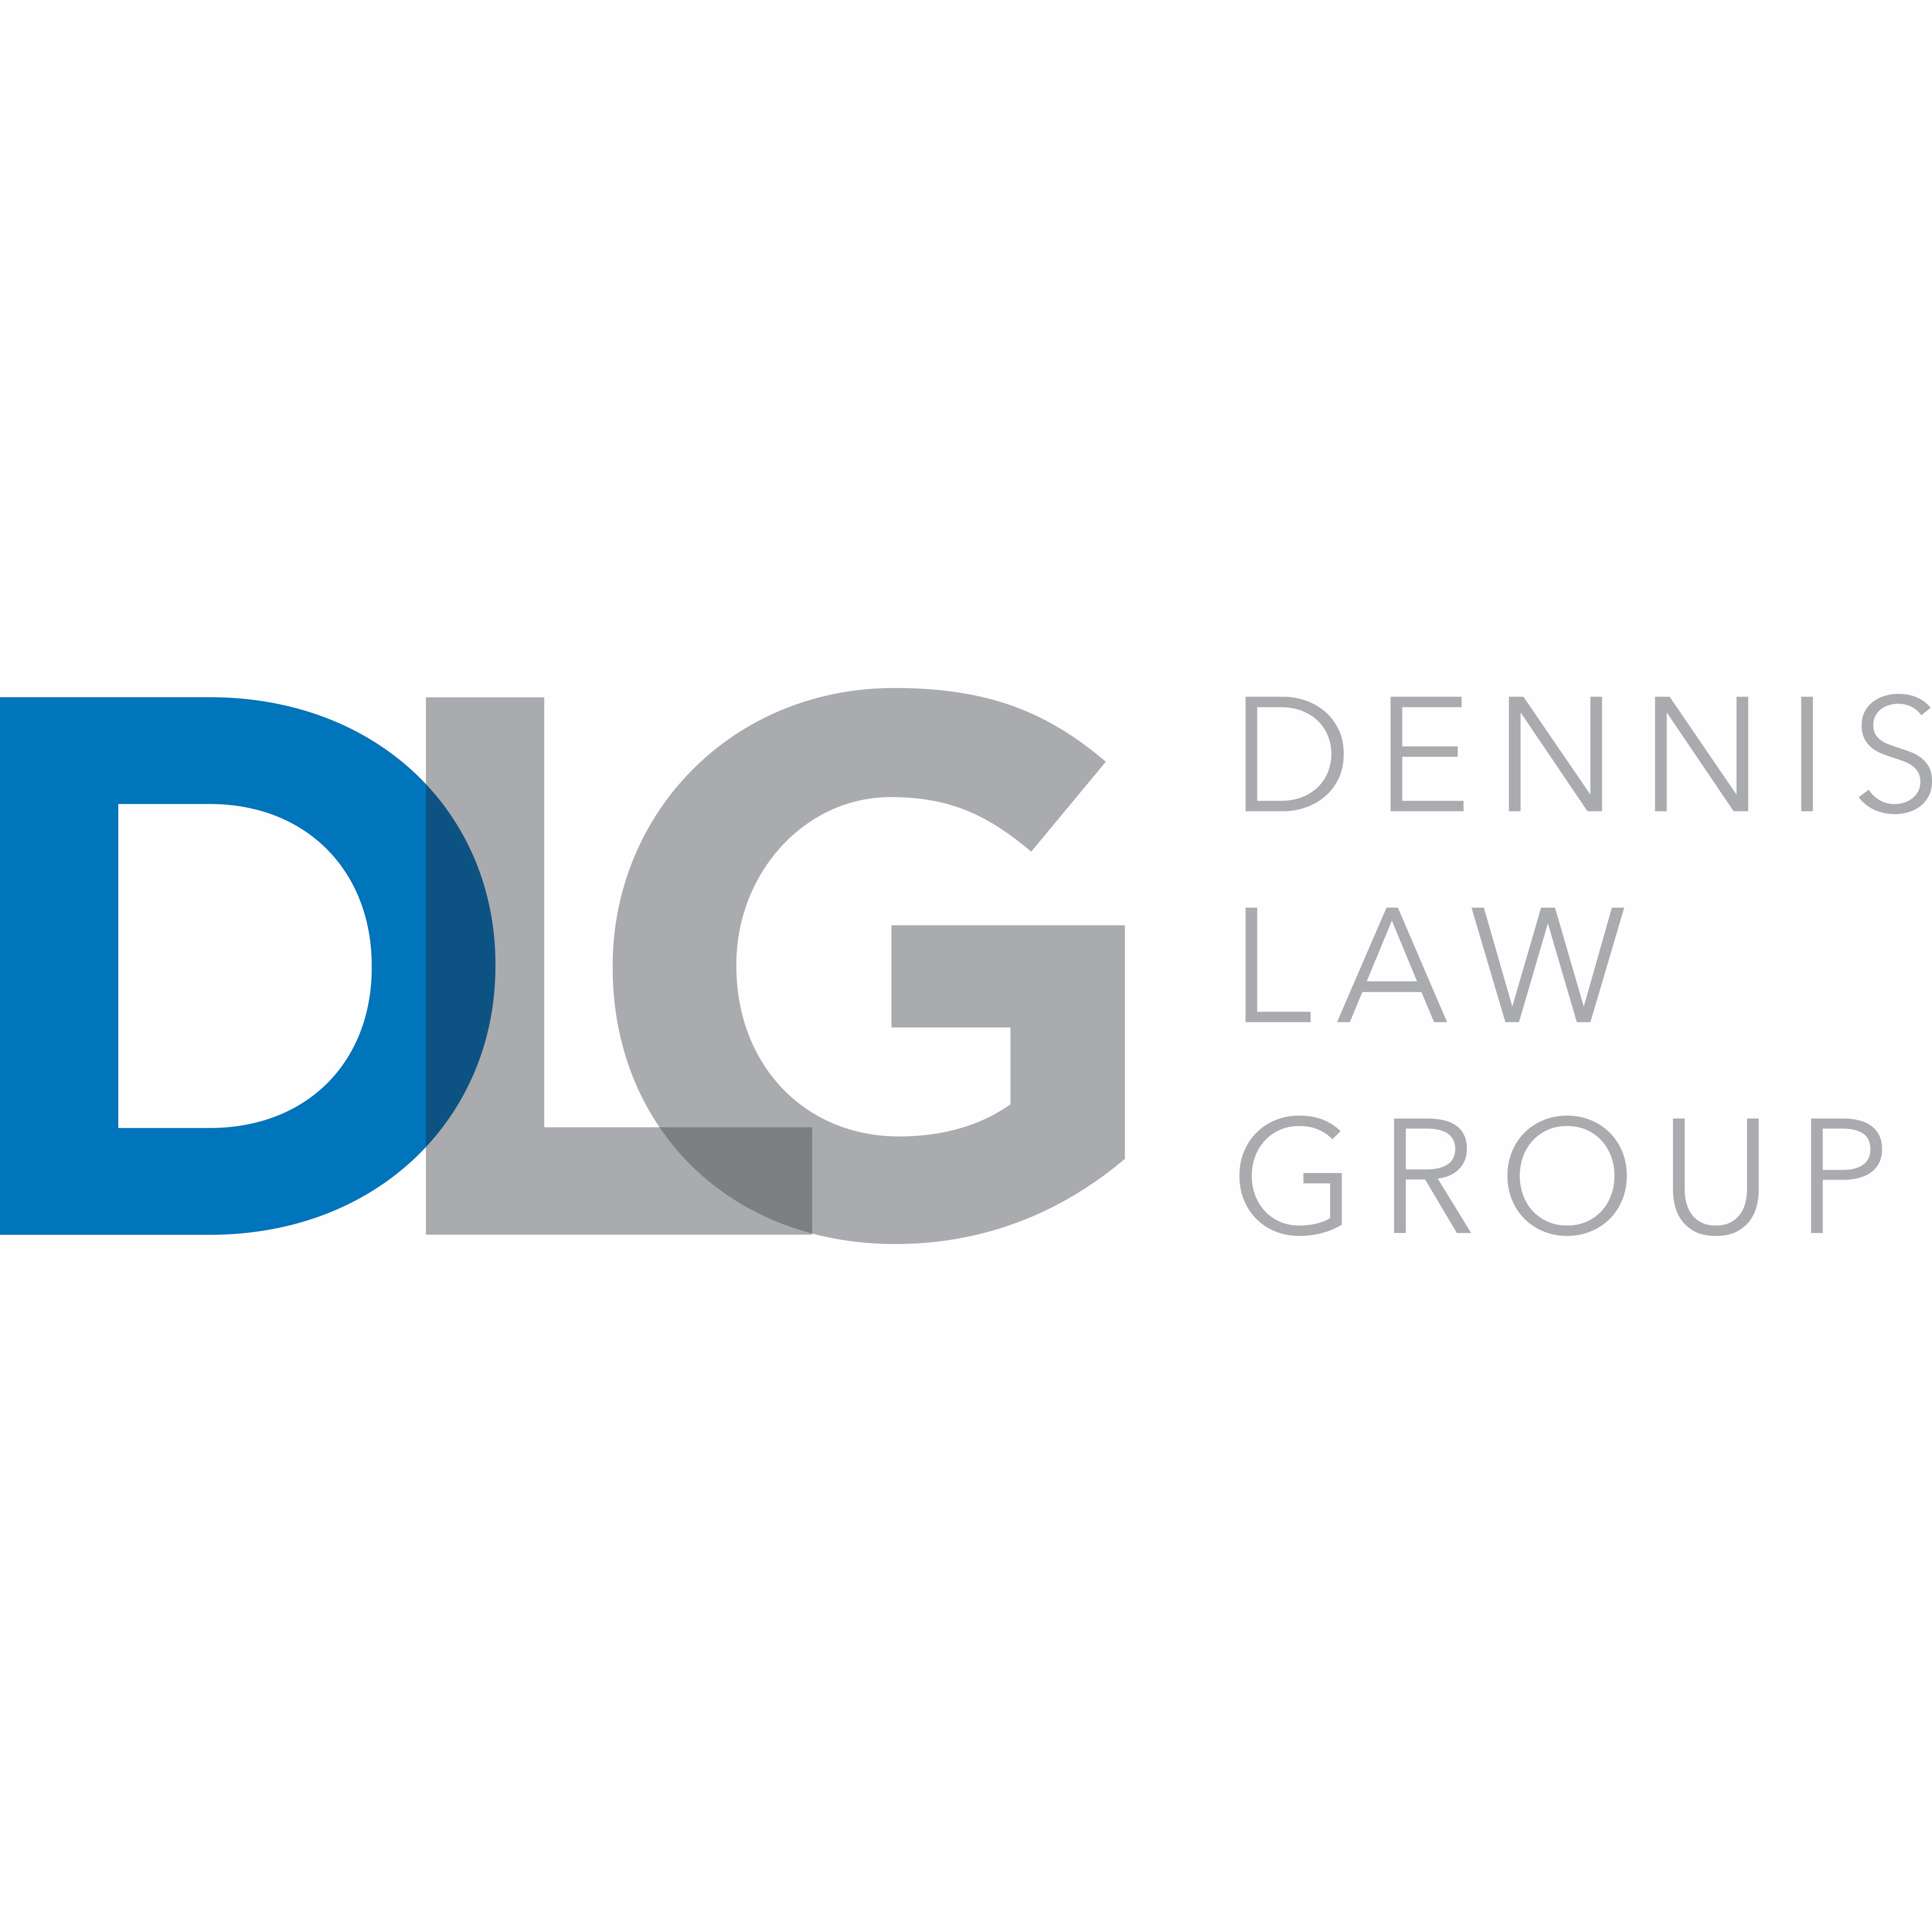 Dennis Law Group